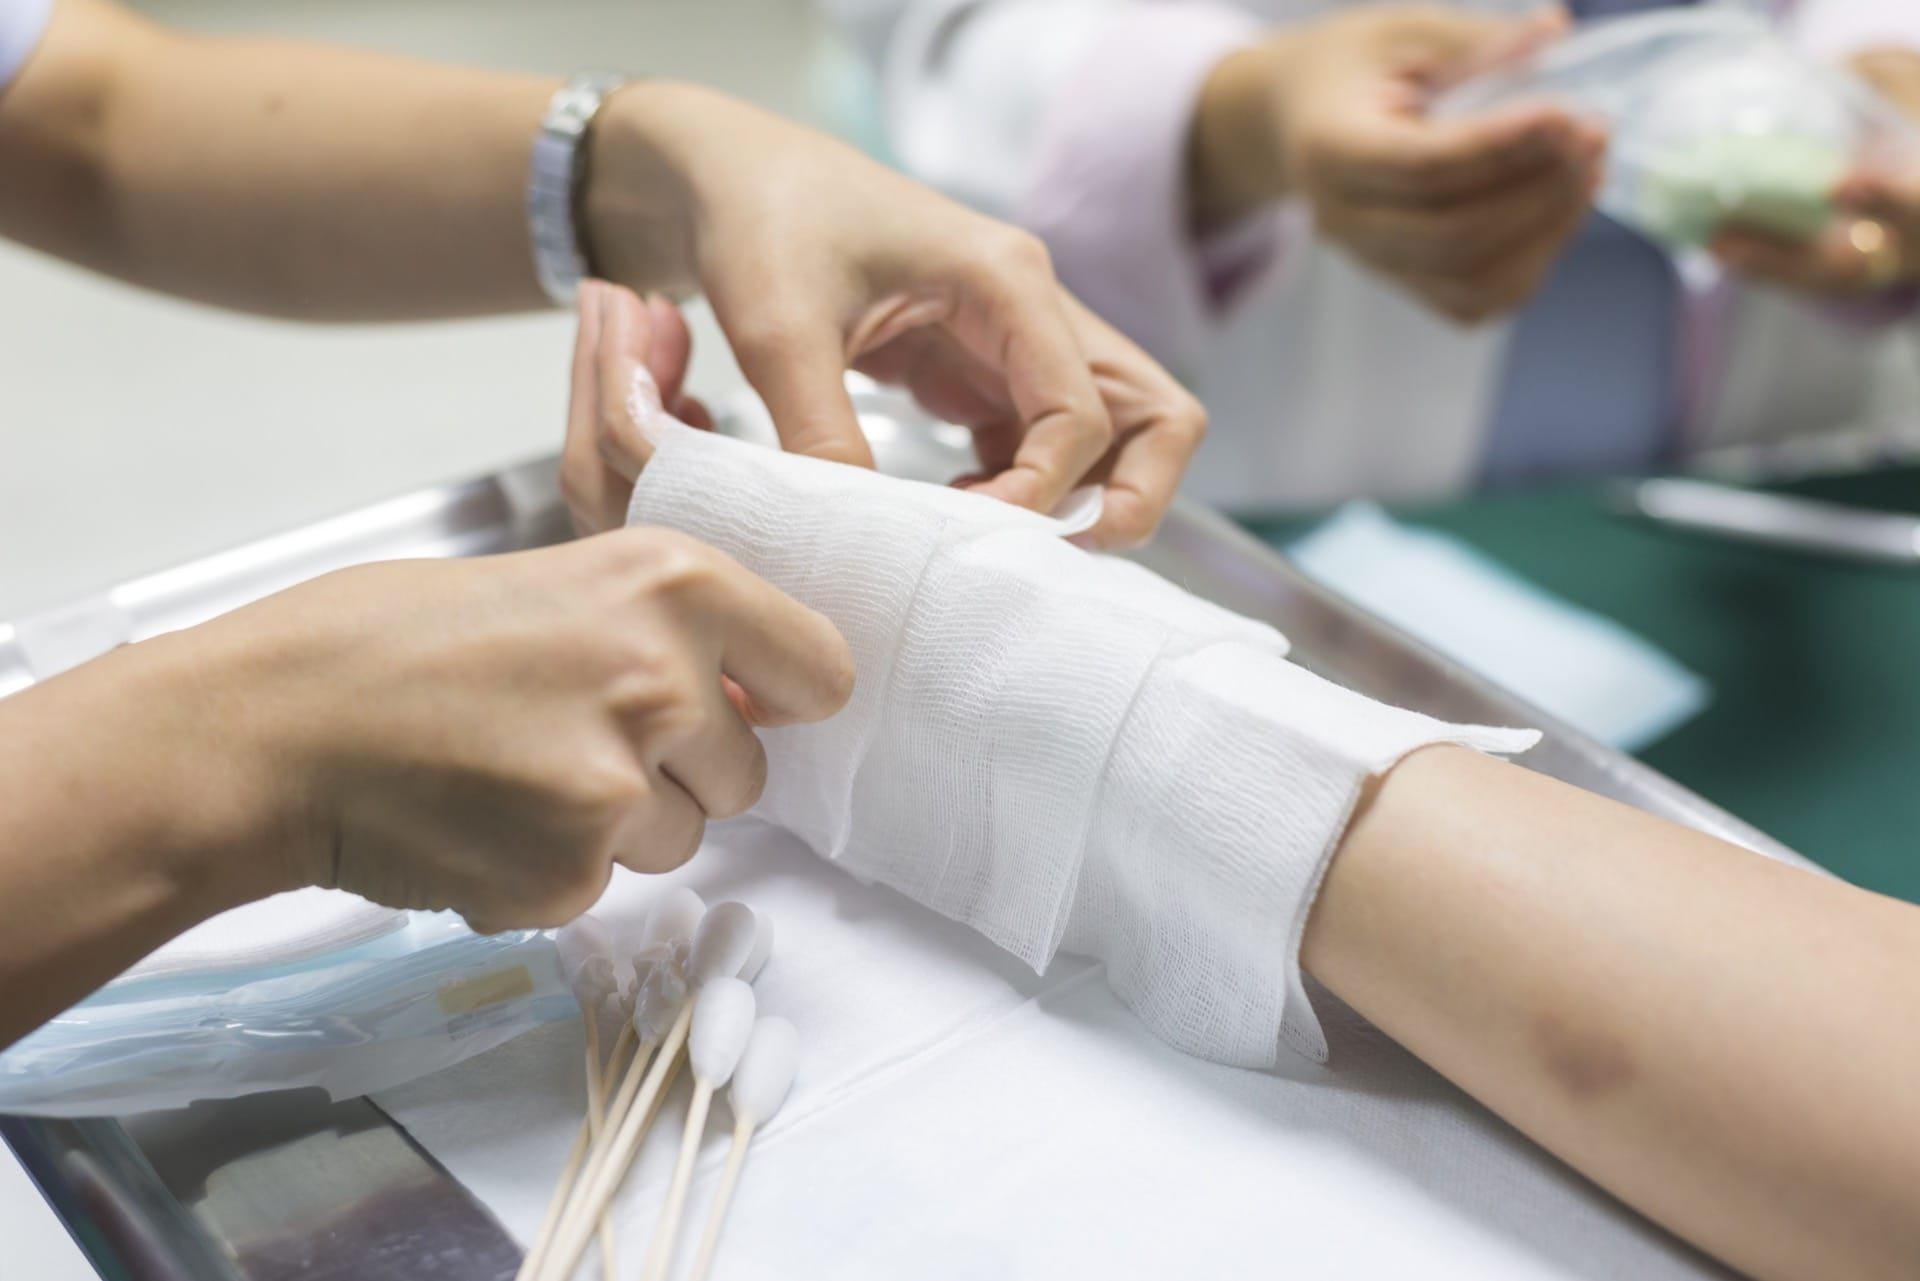 Preventing and Managing Burns